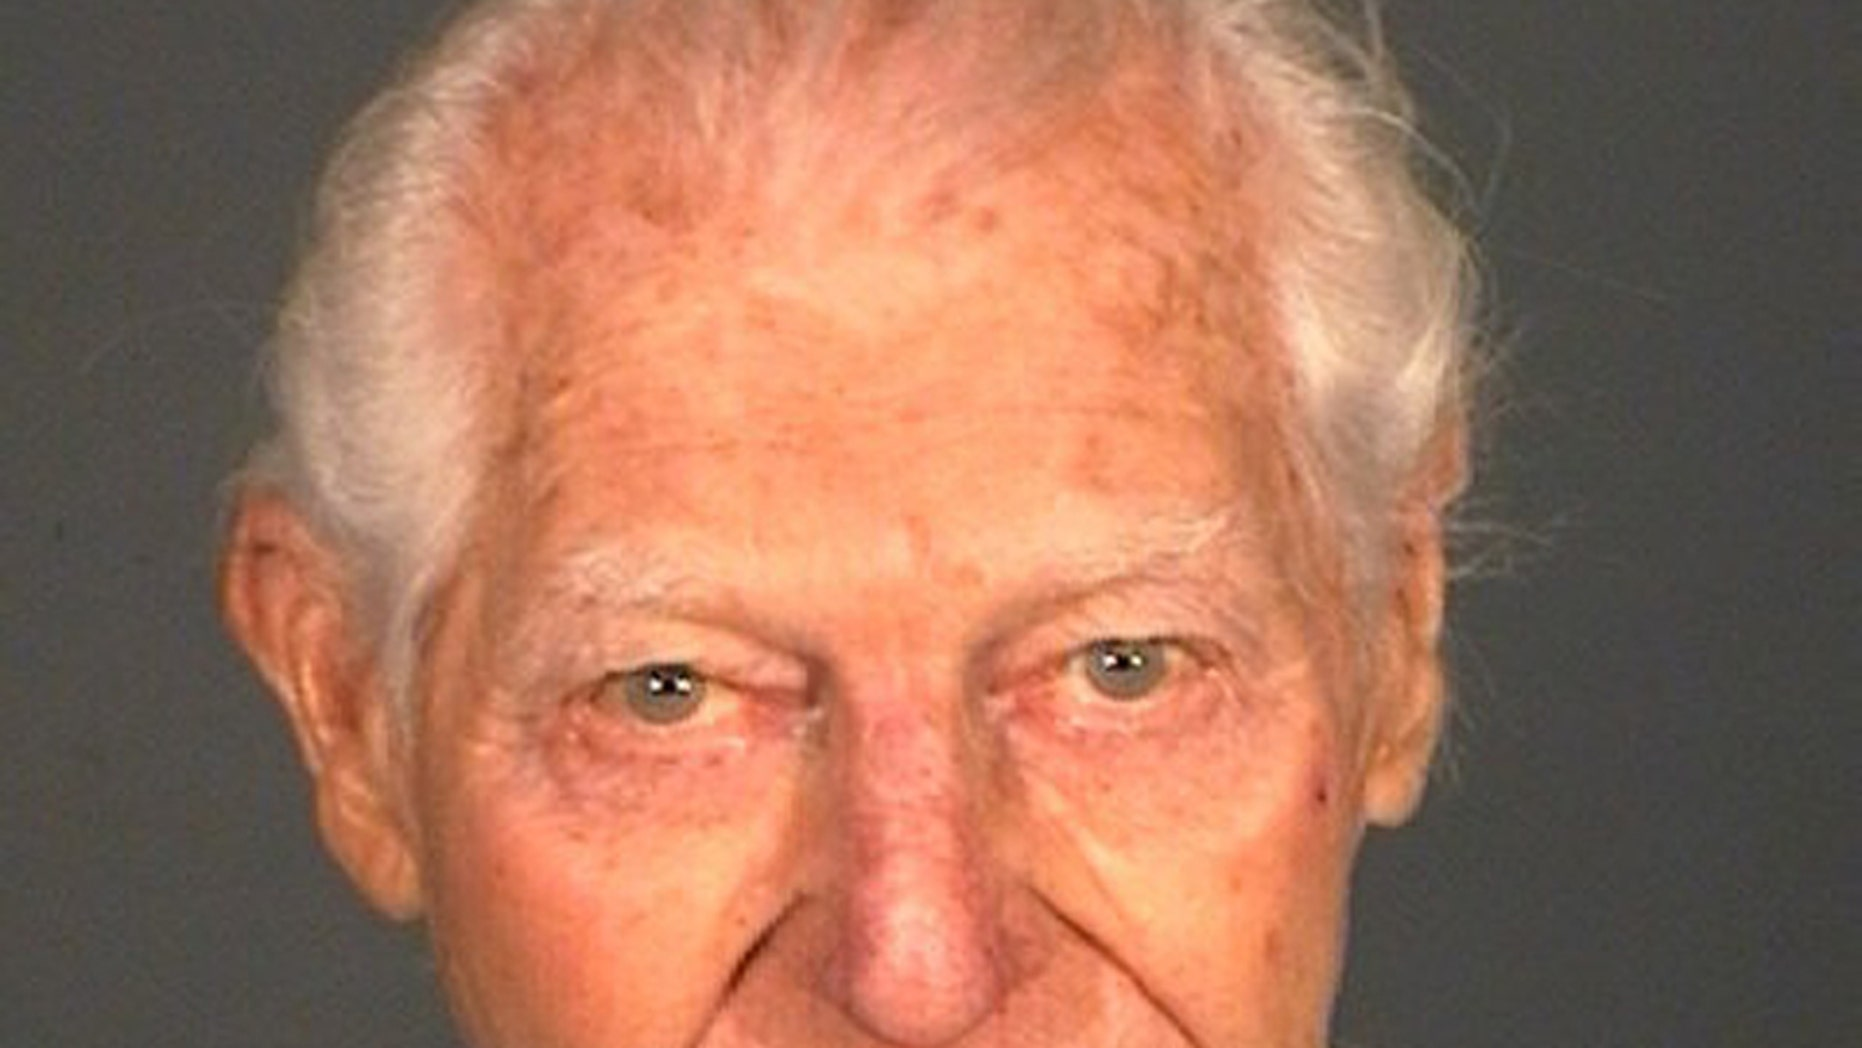 This photo provided by the Carson City Sheriff 's Departmentshows William Dresser. Dresser was arrested  Sunday Jan. 19, 2014, after firing one shot with small-caliber semi-automatic handgun that struck his wife in the chest at Carson Tahoe Regional Medical Center in Carson City. Dresser was placed on suicide watch at a local jail. (AP Photo/Carson City Sheriff Department)